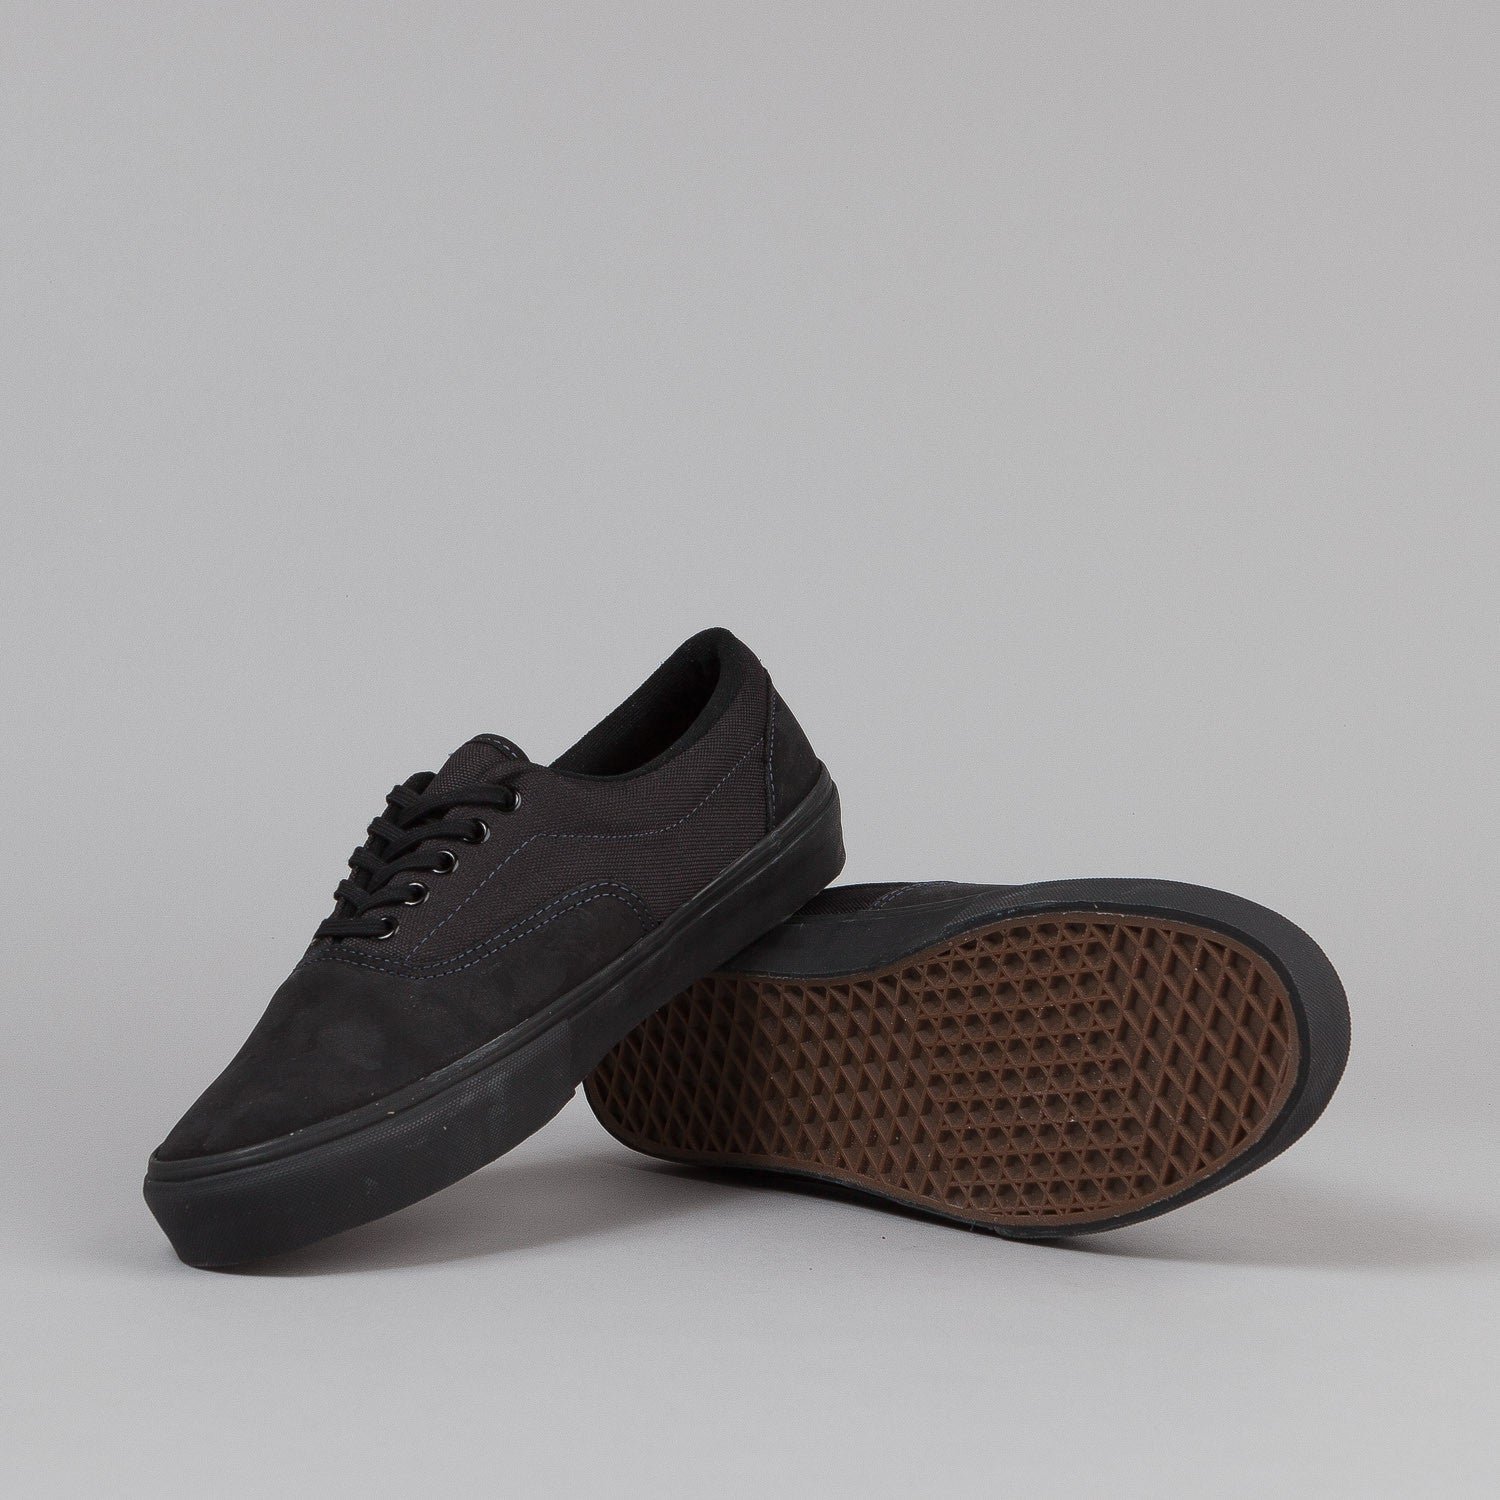 Vans Era Pro Shoes - Black Supertuff Suede